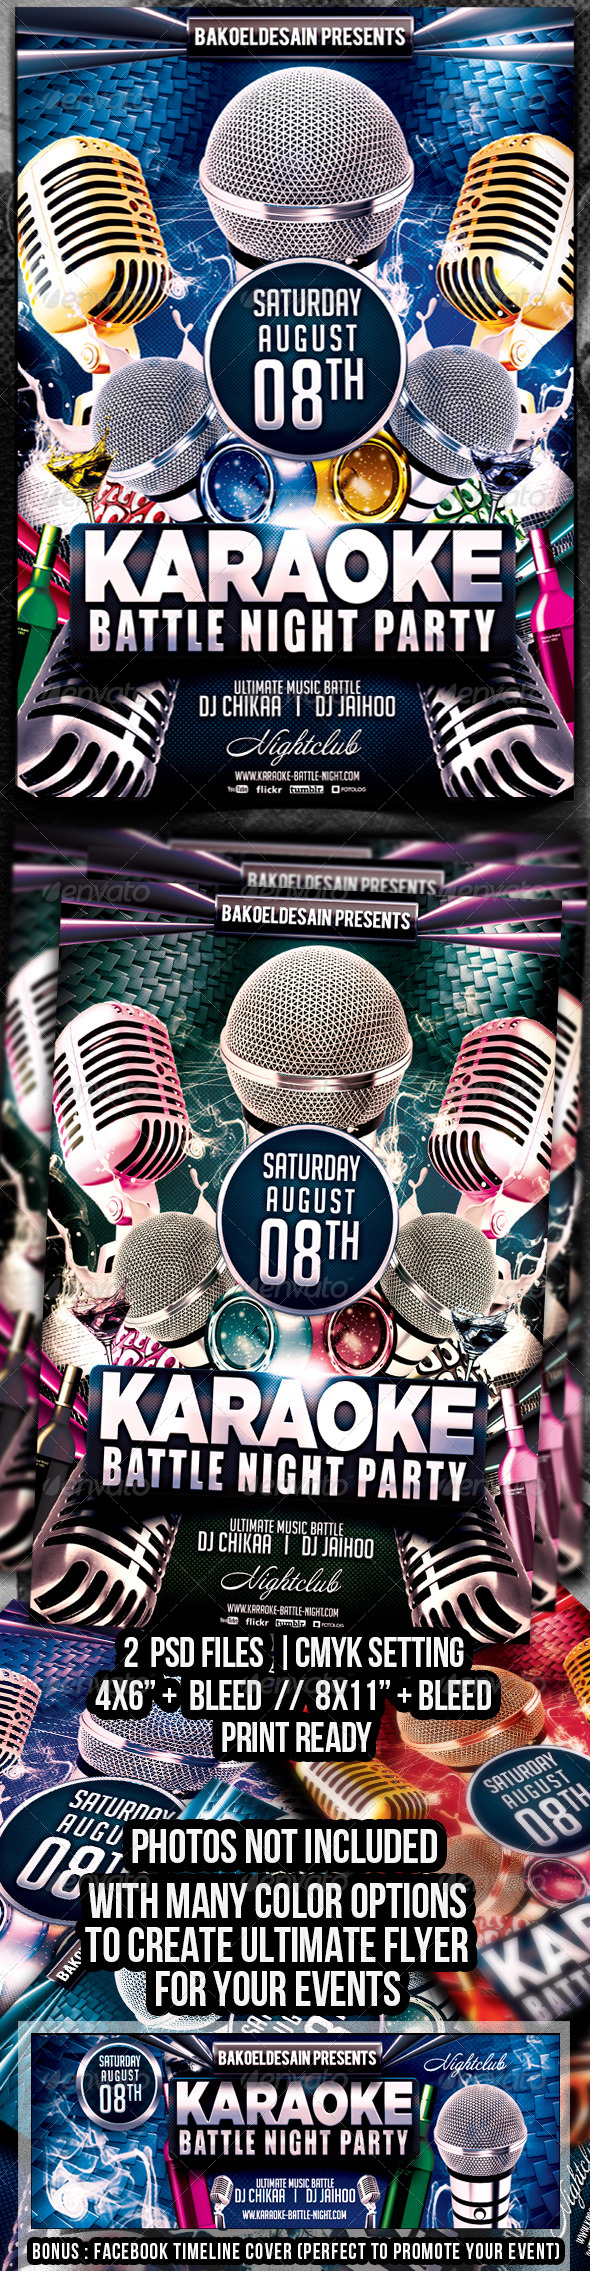 GraphicRiver Karaoke Battle Night Party Flyer 5984372